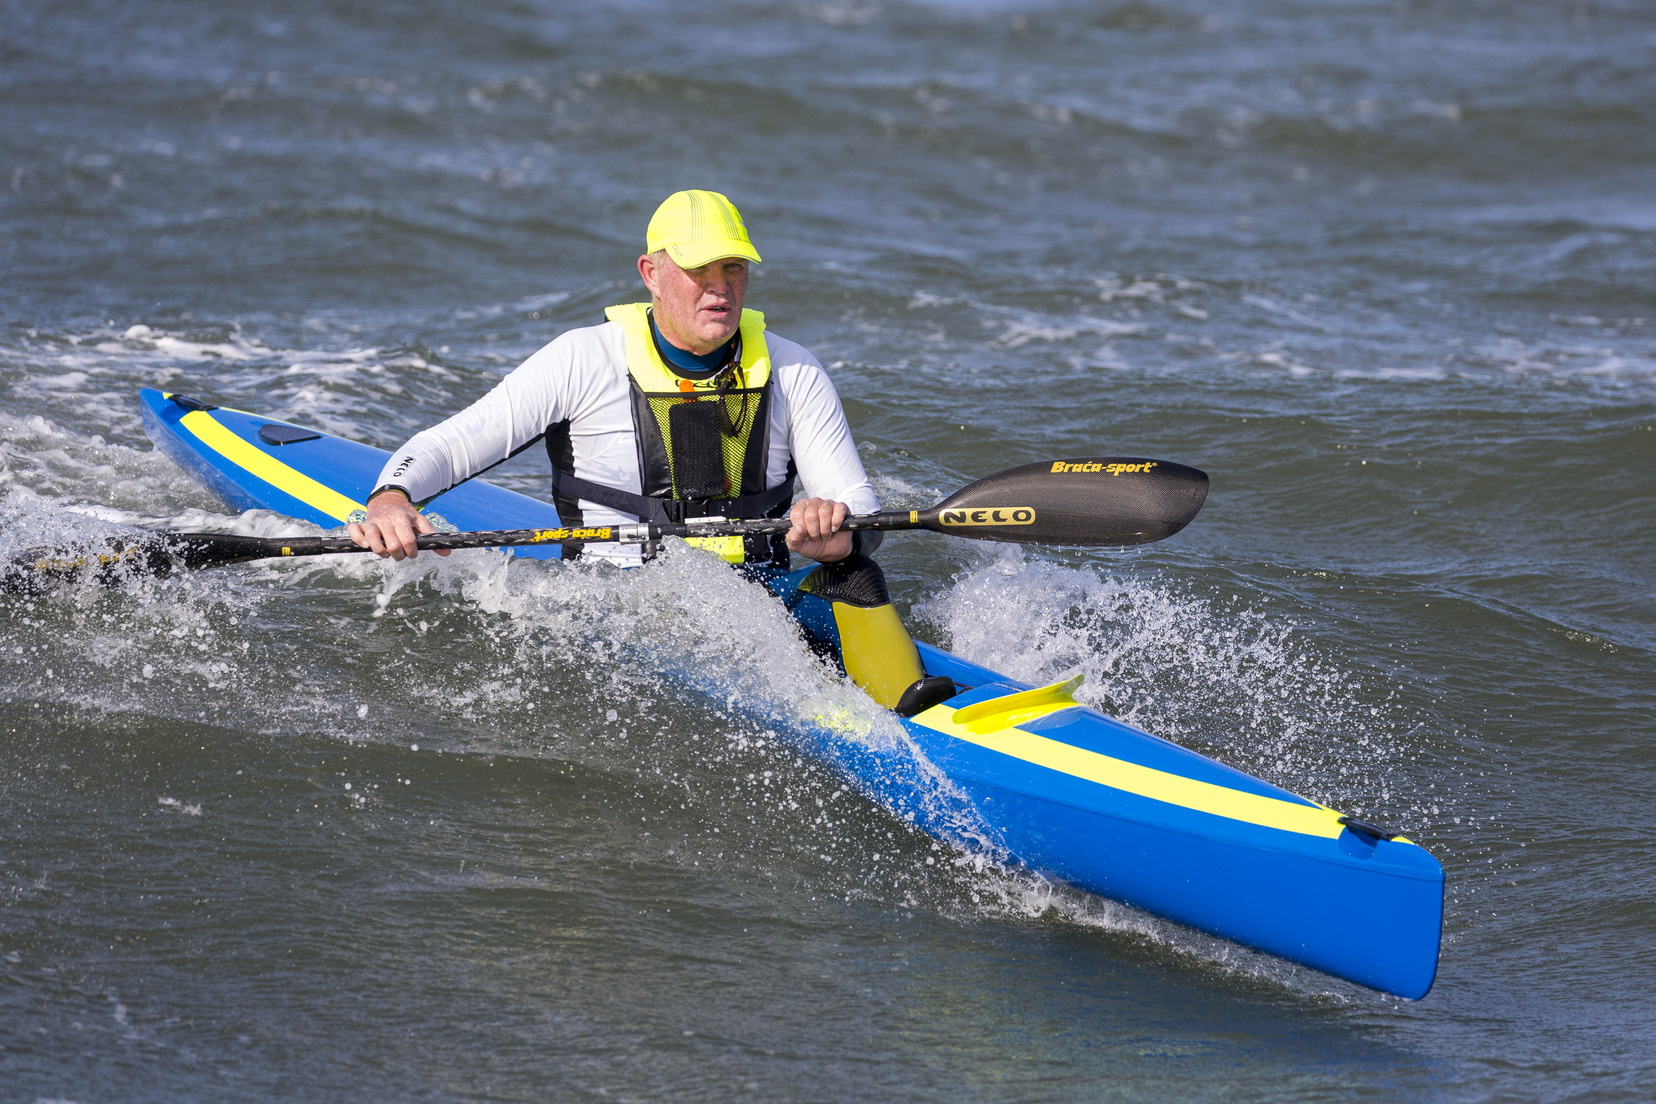 Nelo Surfskis and Accessories | Elite Ocean Sports